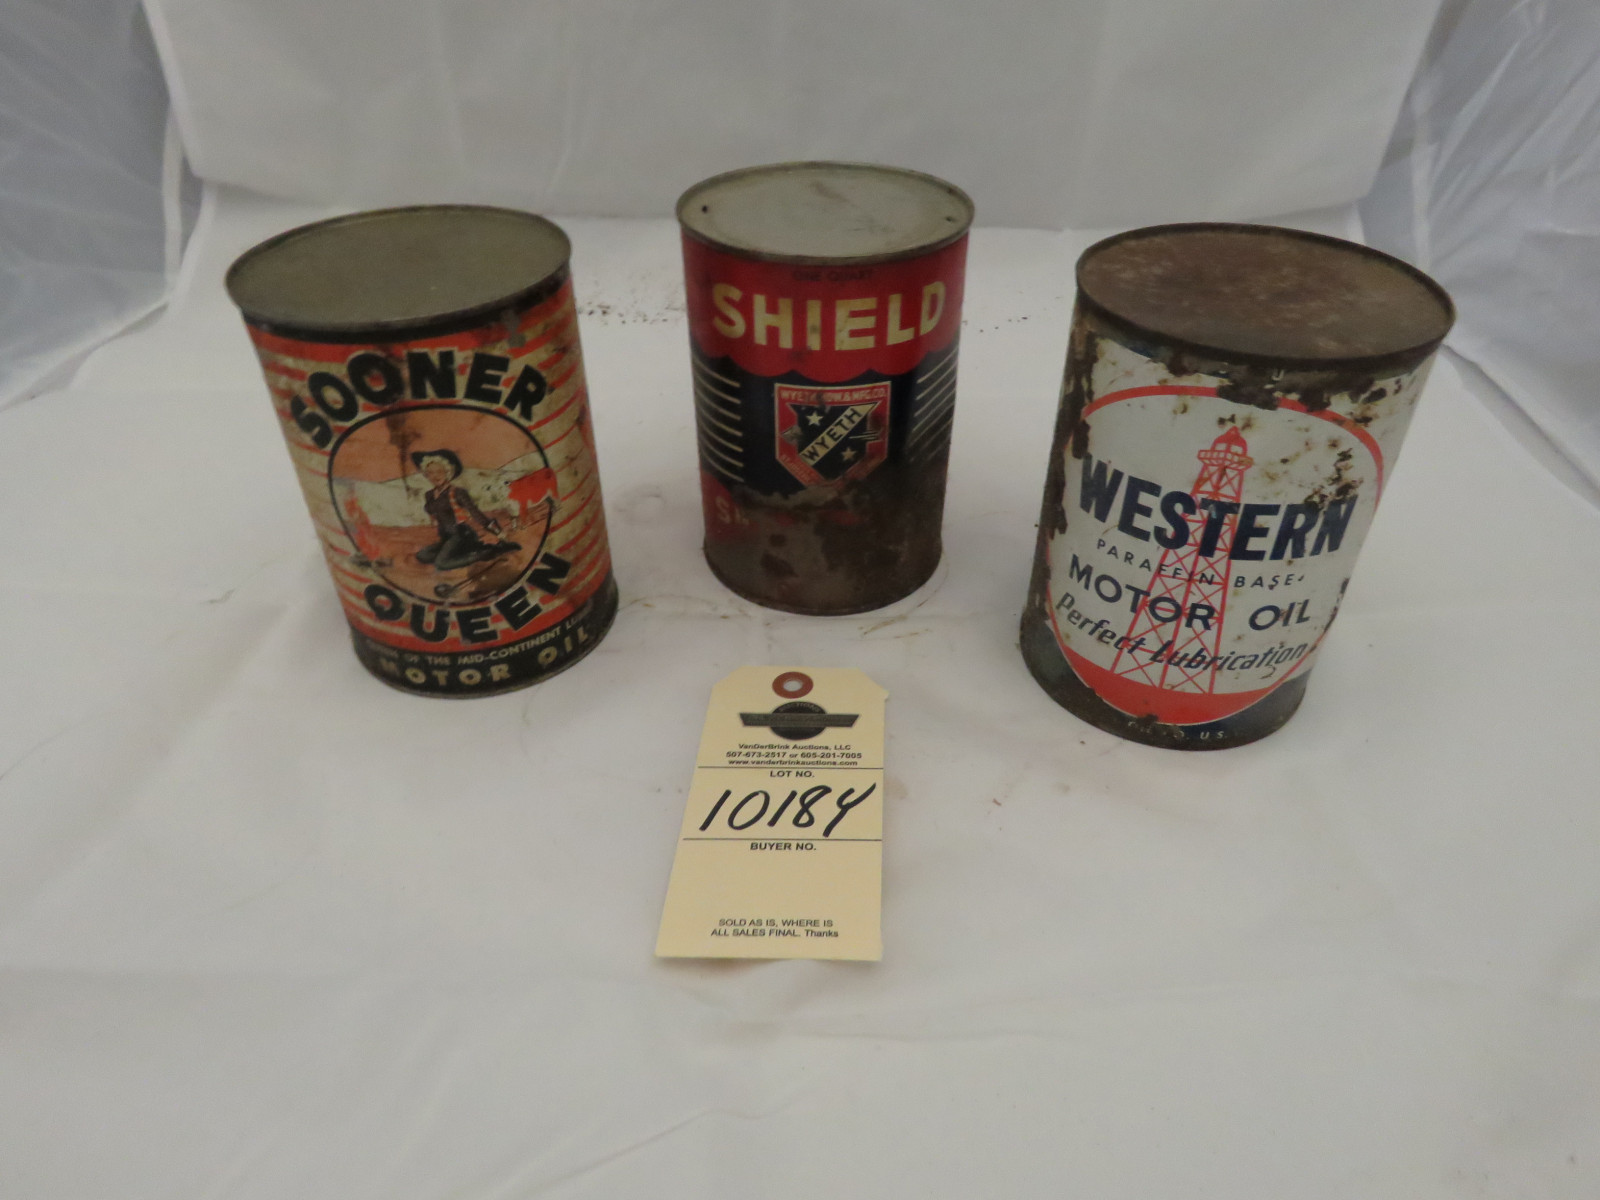 Vintage Oil Can Grouping - Image 1